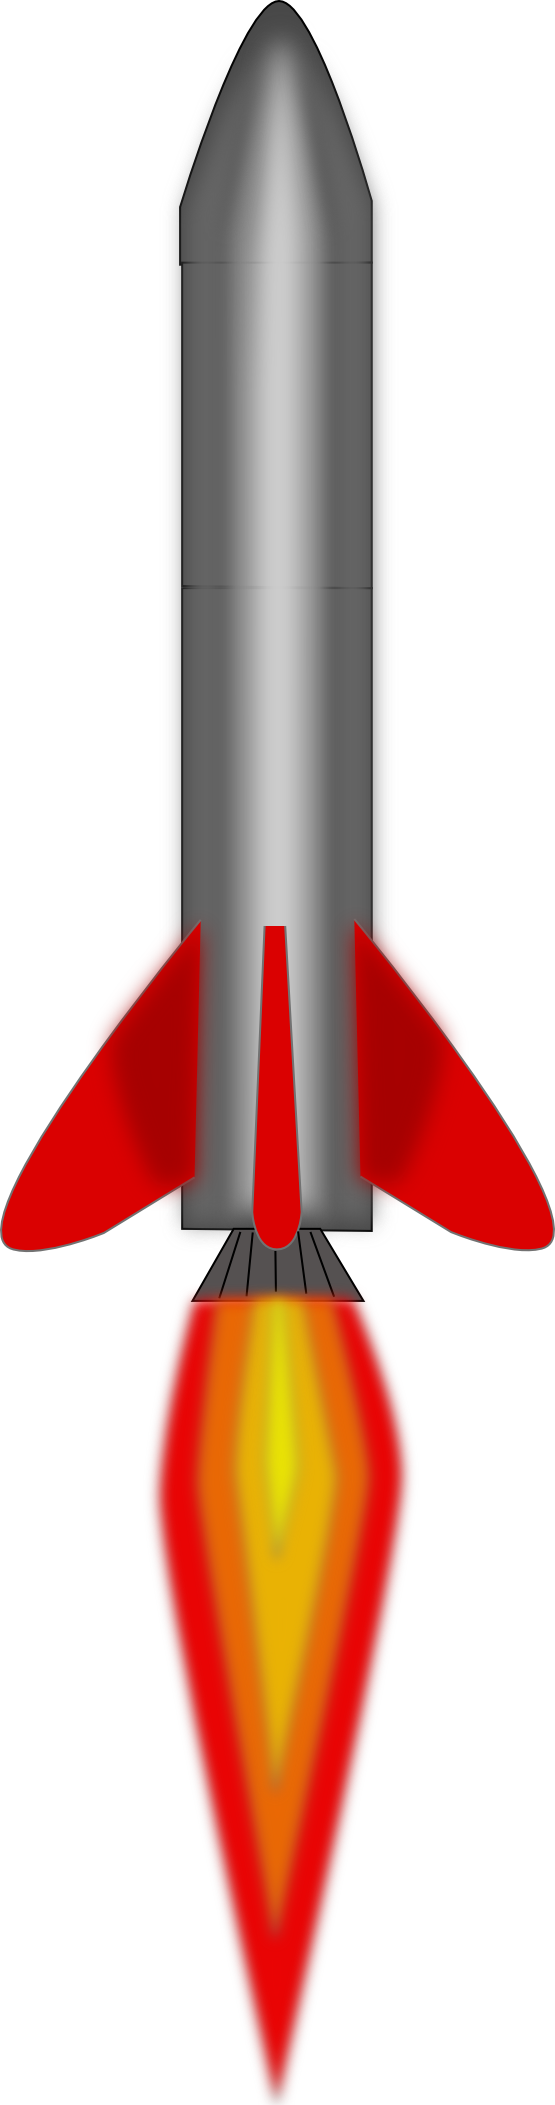 Missiles drawing. Missile png images free